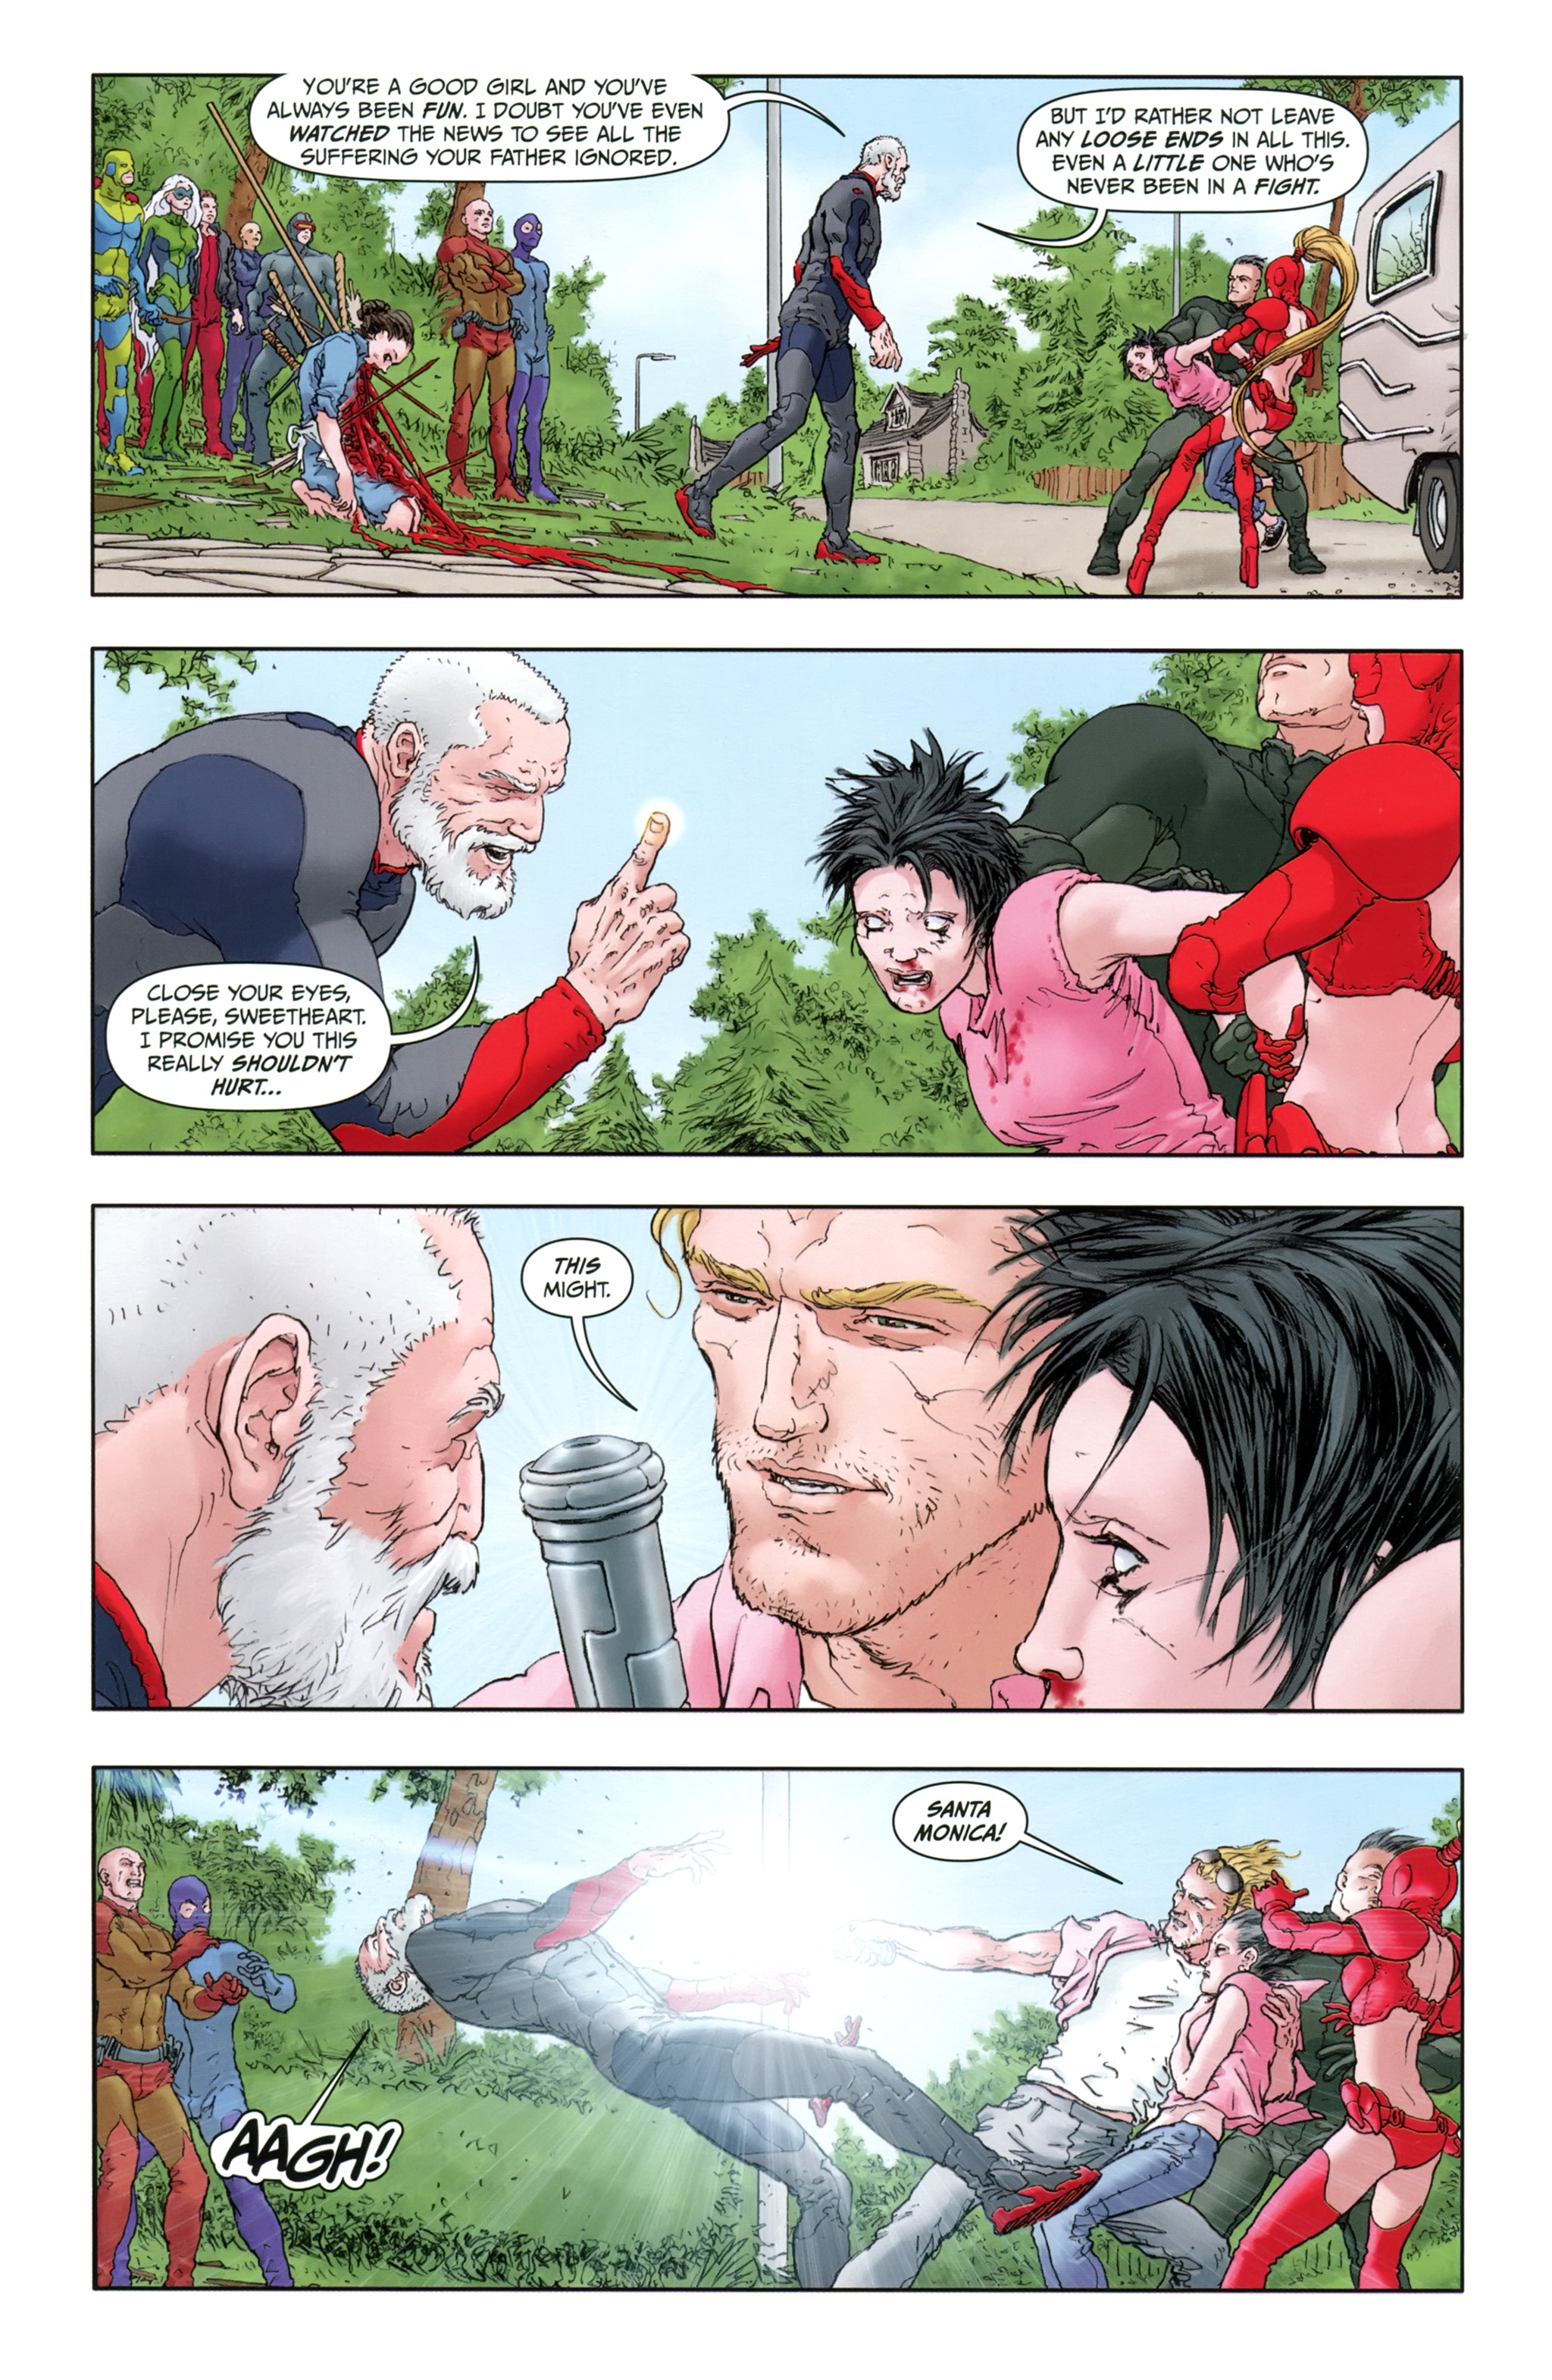 Jupiter S Legacy Issue 3 Read Jupiter S Legacy Issue 3 Comic Online In High Quality Read Full Comic Online For Free Read Comics Online In High Quality